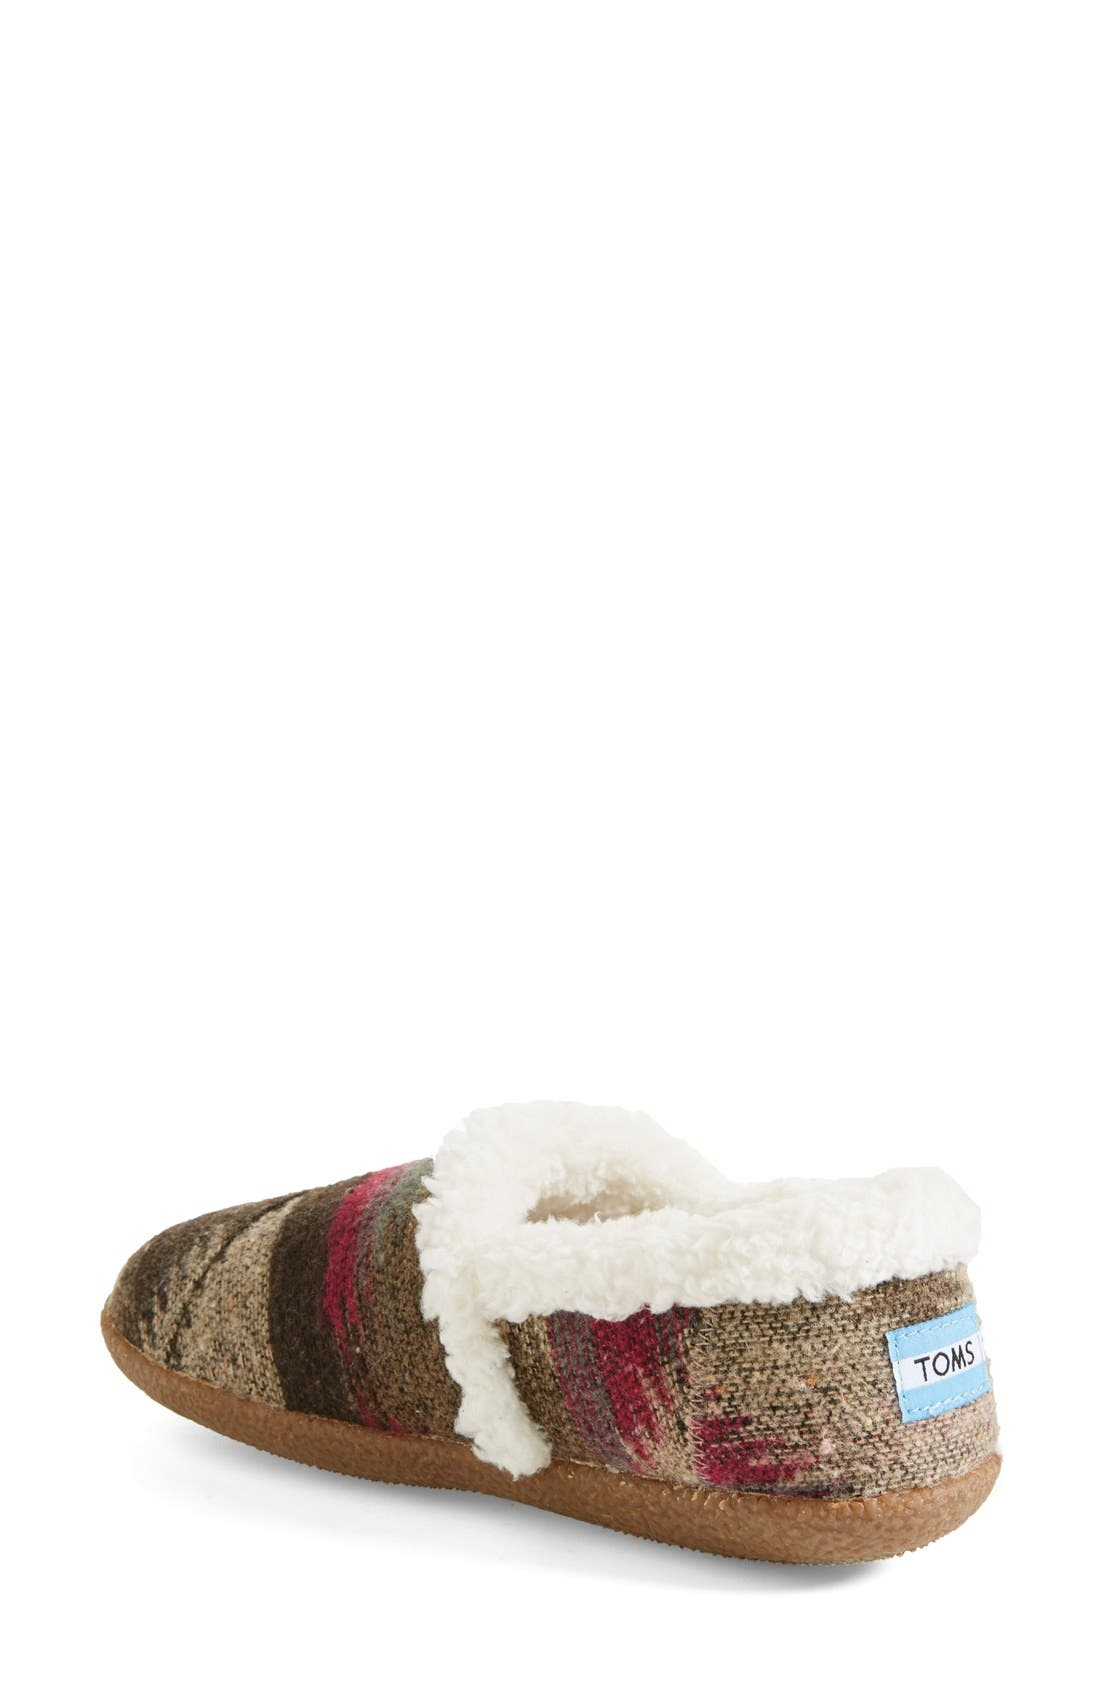 Alternate Image 2  - TOMS 'Classic - Wool' Slippers (Women)